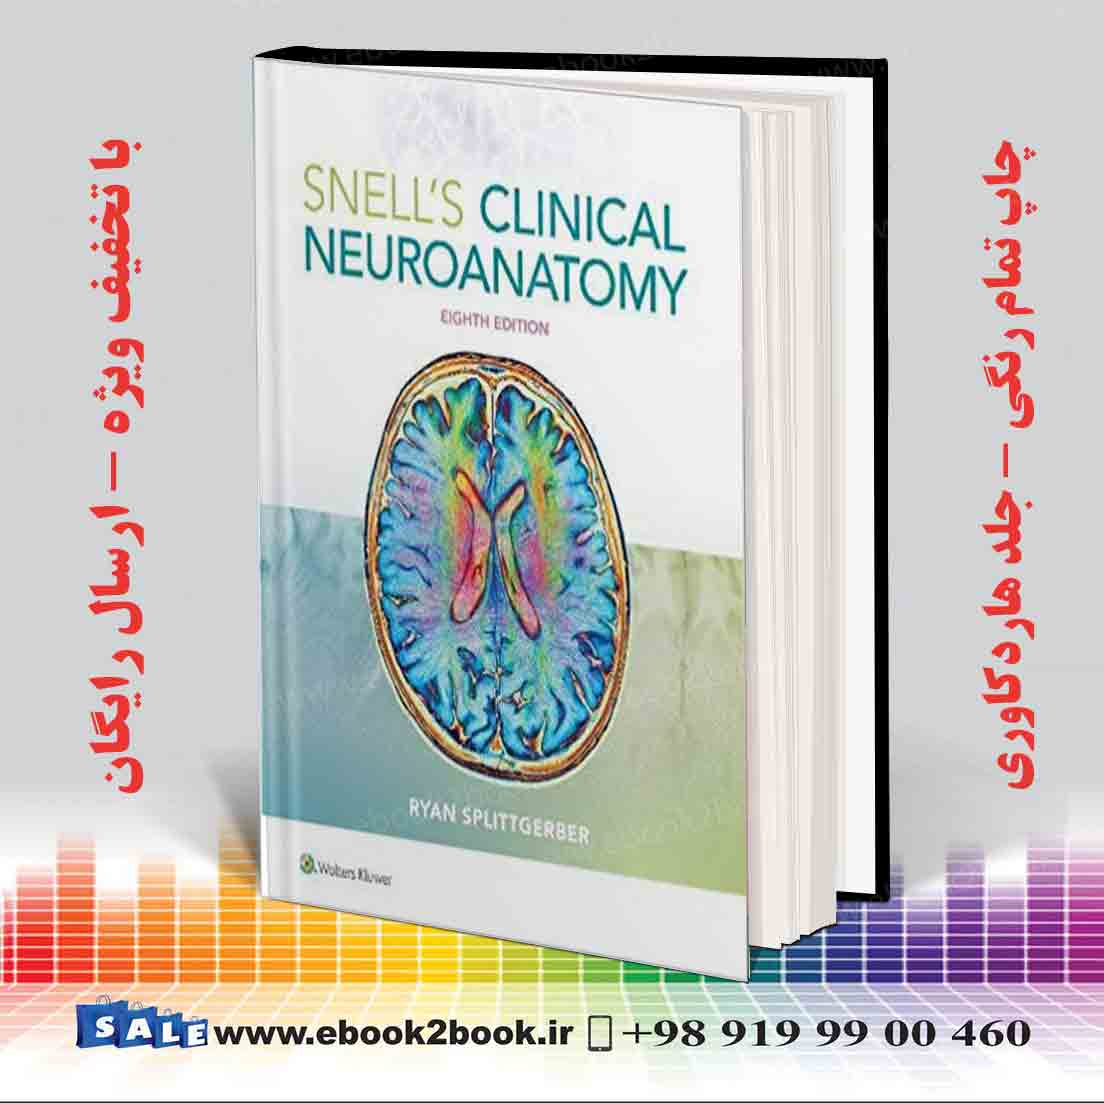 Snells Clinical Neuroanatomy Eighth Edition